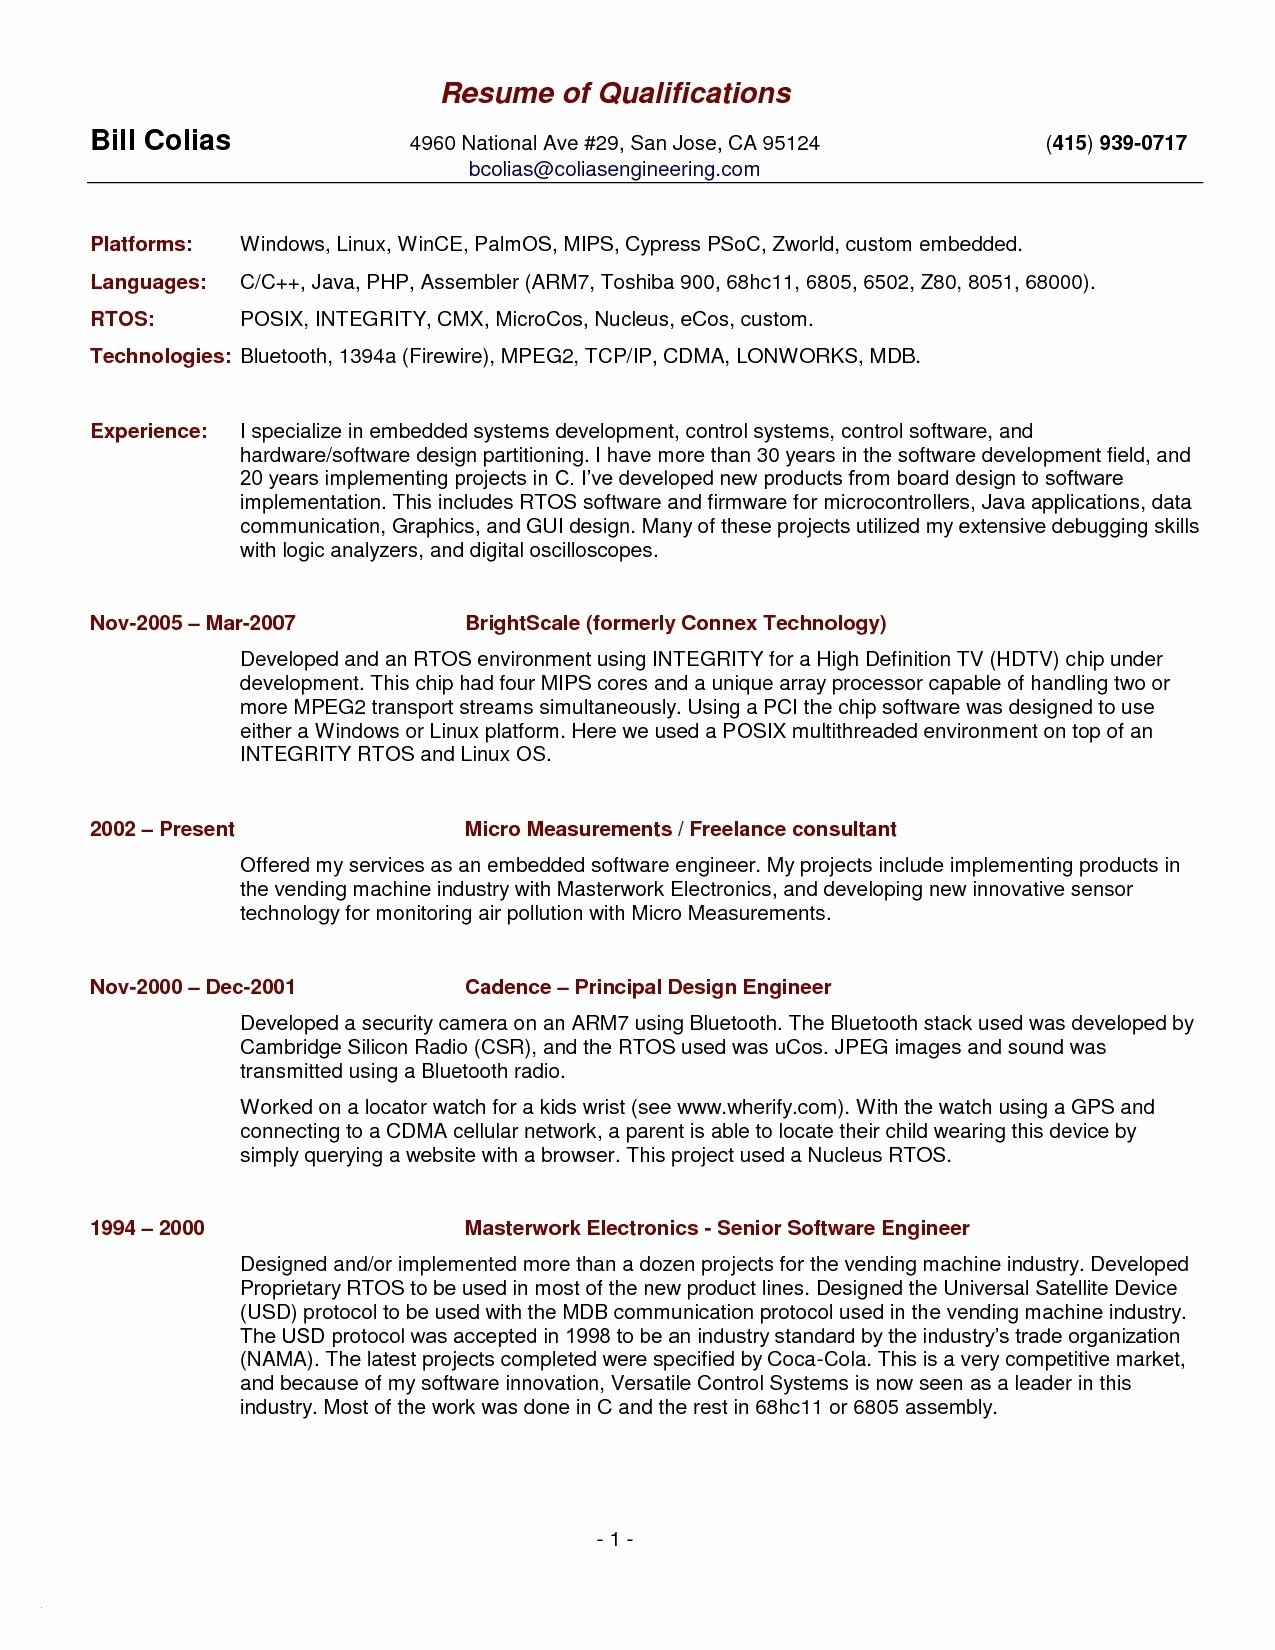 Professional Free Resume Templates - Resume Templates Pdf Free Inspirational Lovely Pr Resume Template